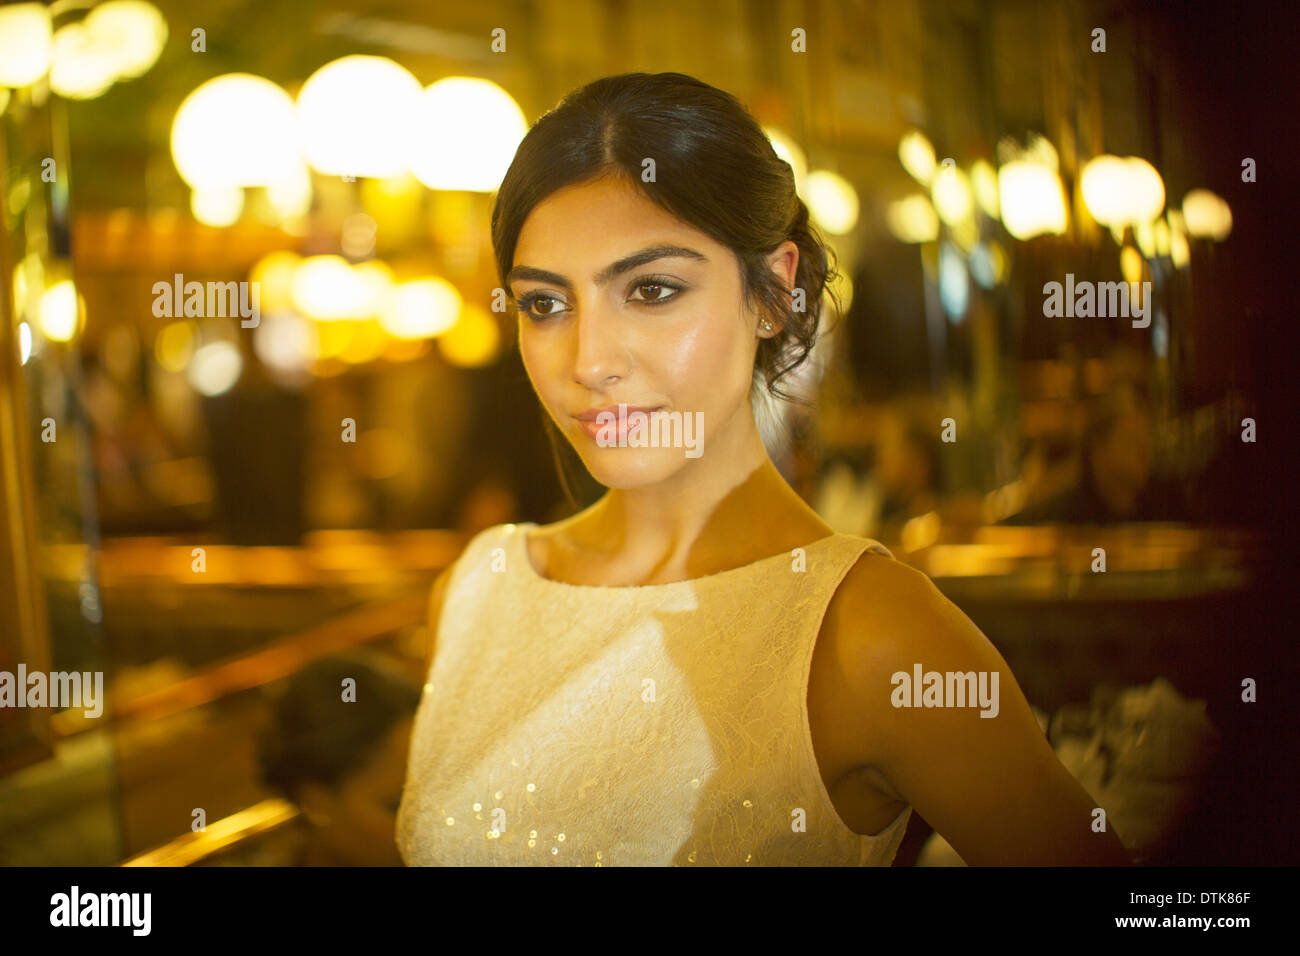 Serious woman in dress - Stock Image